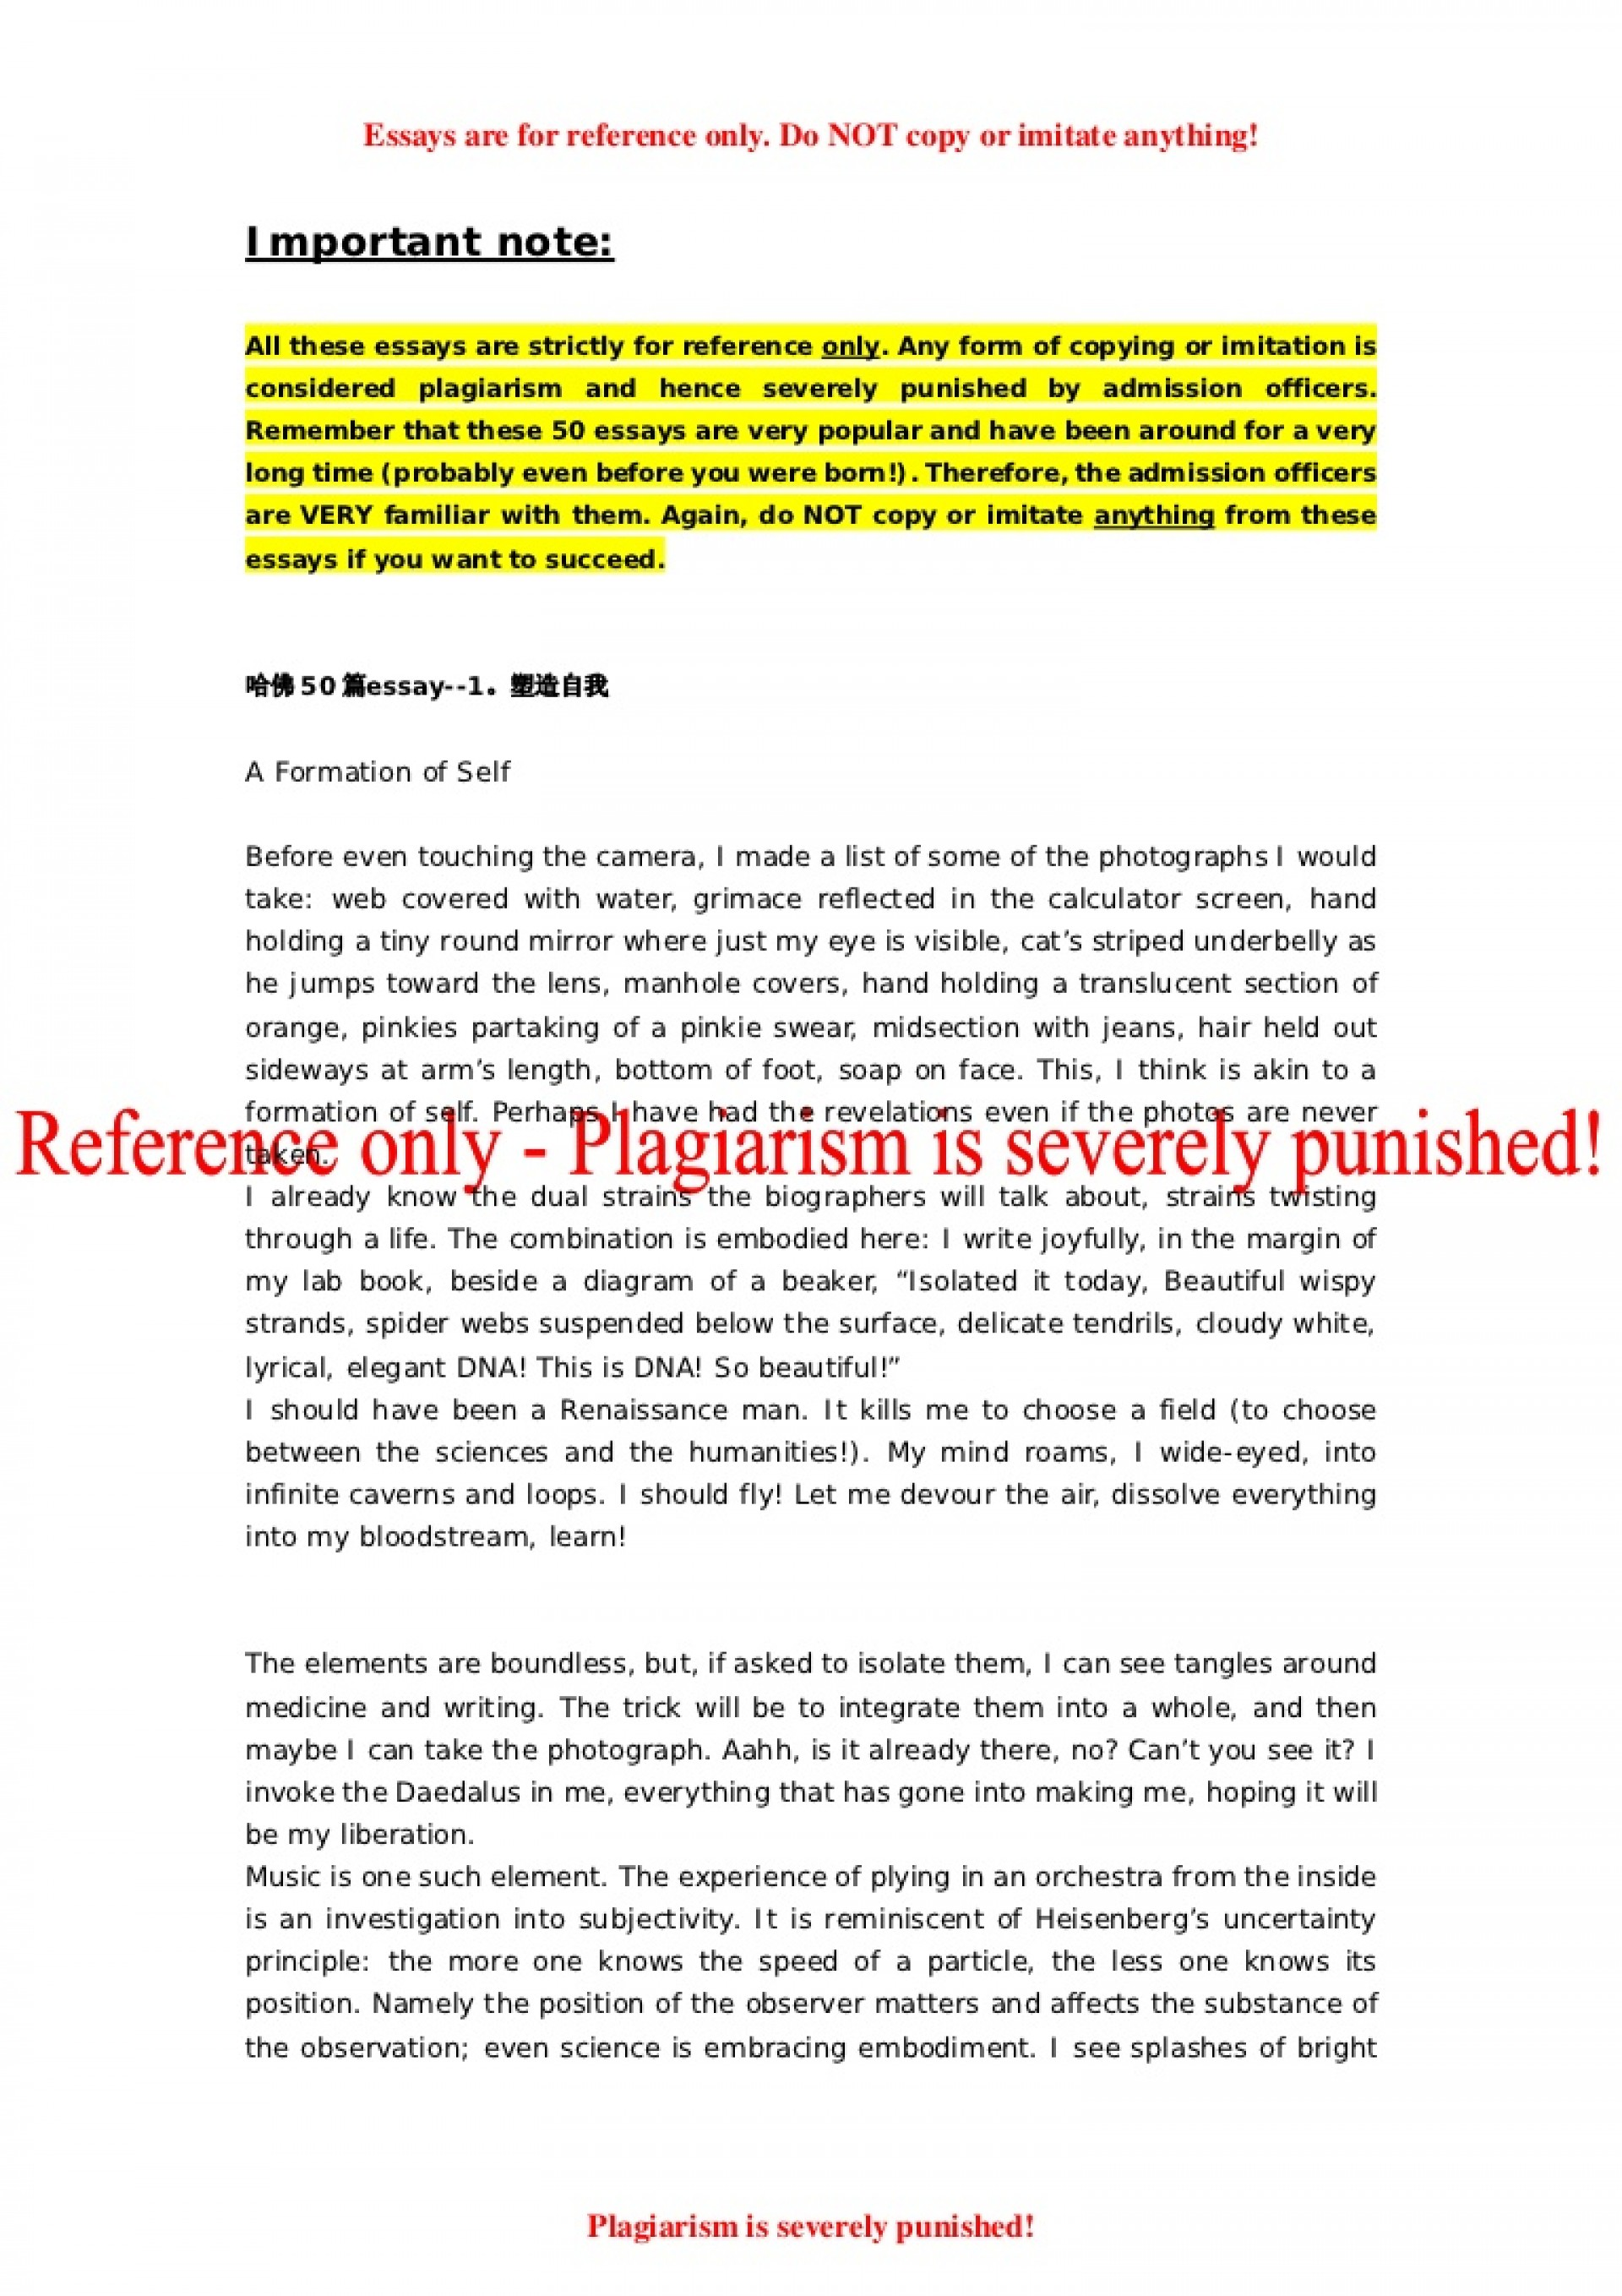 002 Harvard Application Essay 50successfulharvardapplicationessays Phpapp02 Thumbnail Singular Mba Essays Sample Examples 1920